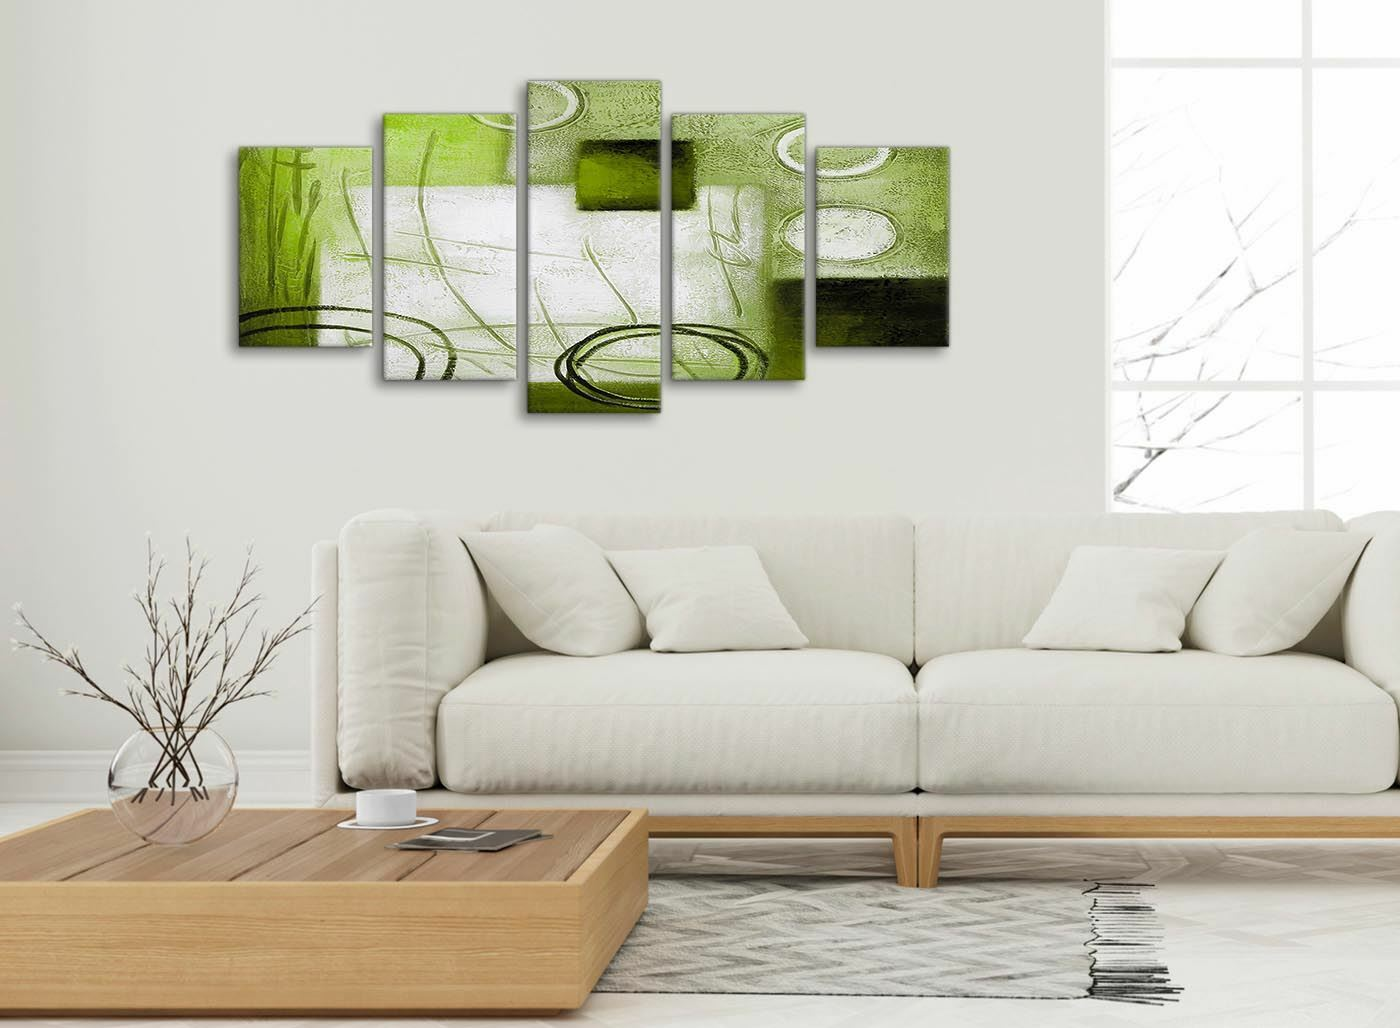 5 Panel Lime Grün Painting Abstract Office Canvas Decorations - - - 5431 - 160cm df86e6